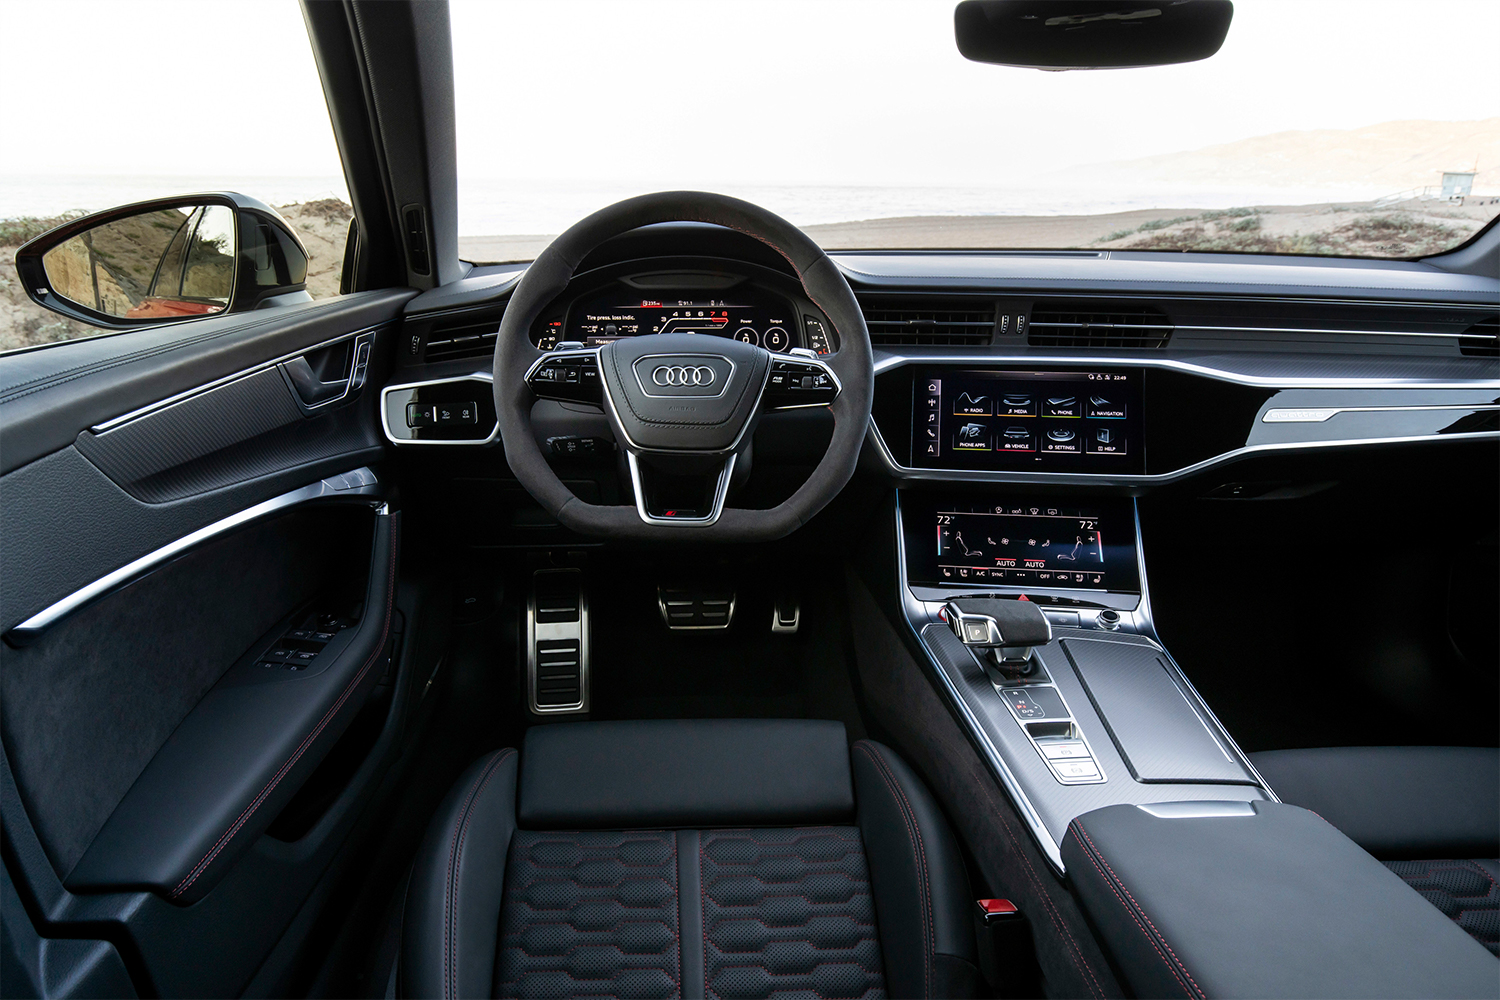 The interior of the Audi RS 6 Avant wagon, a $110,000 luxury wagon. For that money, it's a supremely comfortable ride.